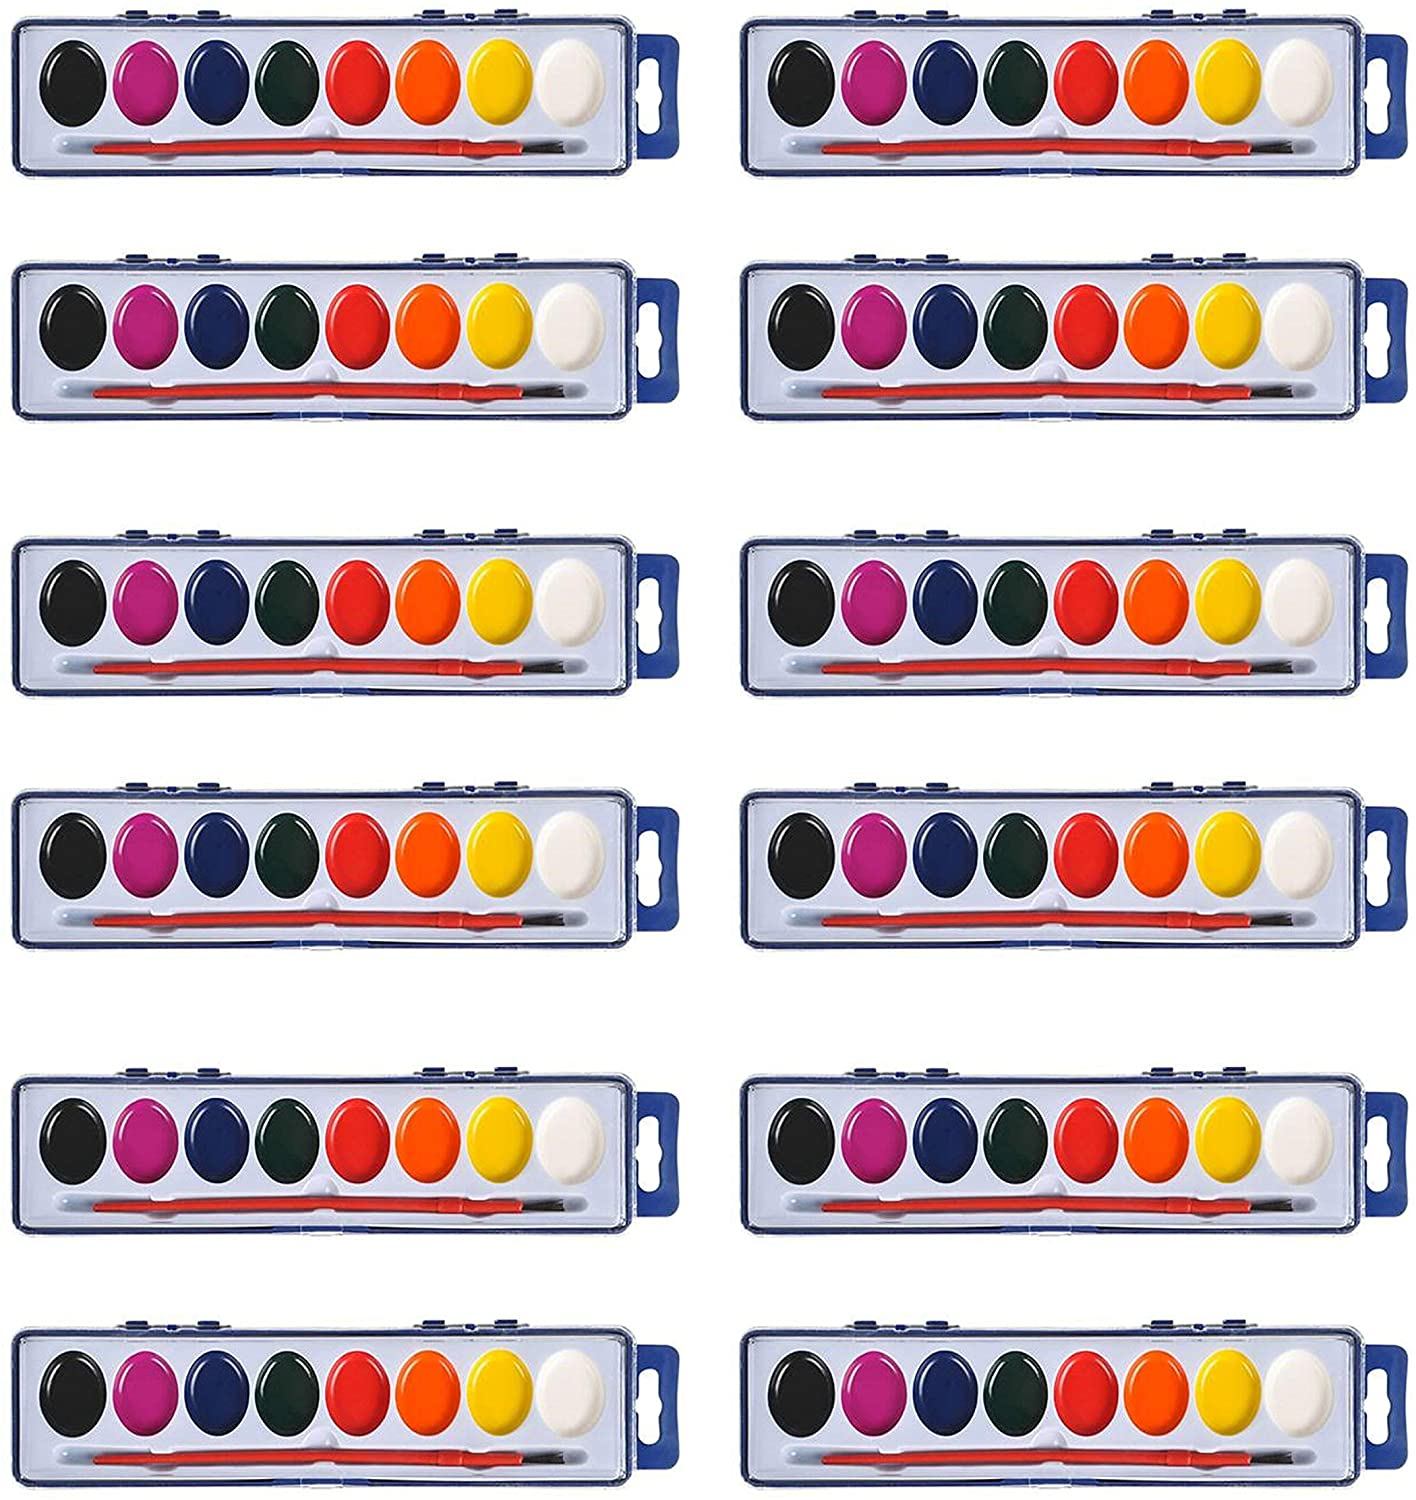 Neliblu Watercolor Paint Sets Bulk Set of 12 with 8 Washable Colors, and Paintbrushes for Kids and Adults - Perfect for Birthday Party Favors, Classroom Activities, Art Classes